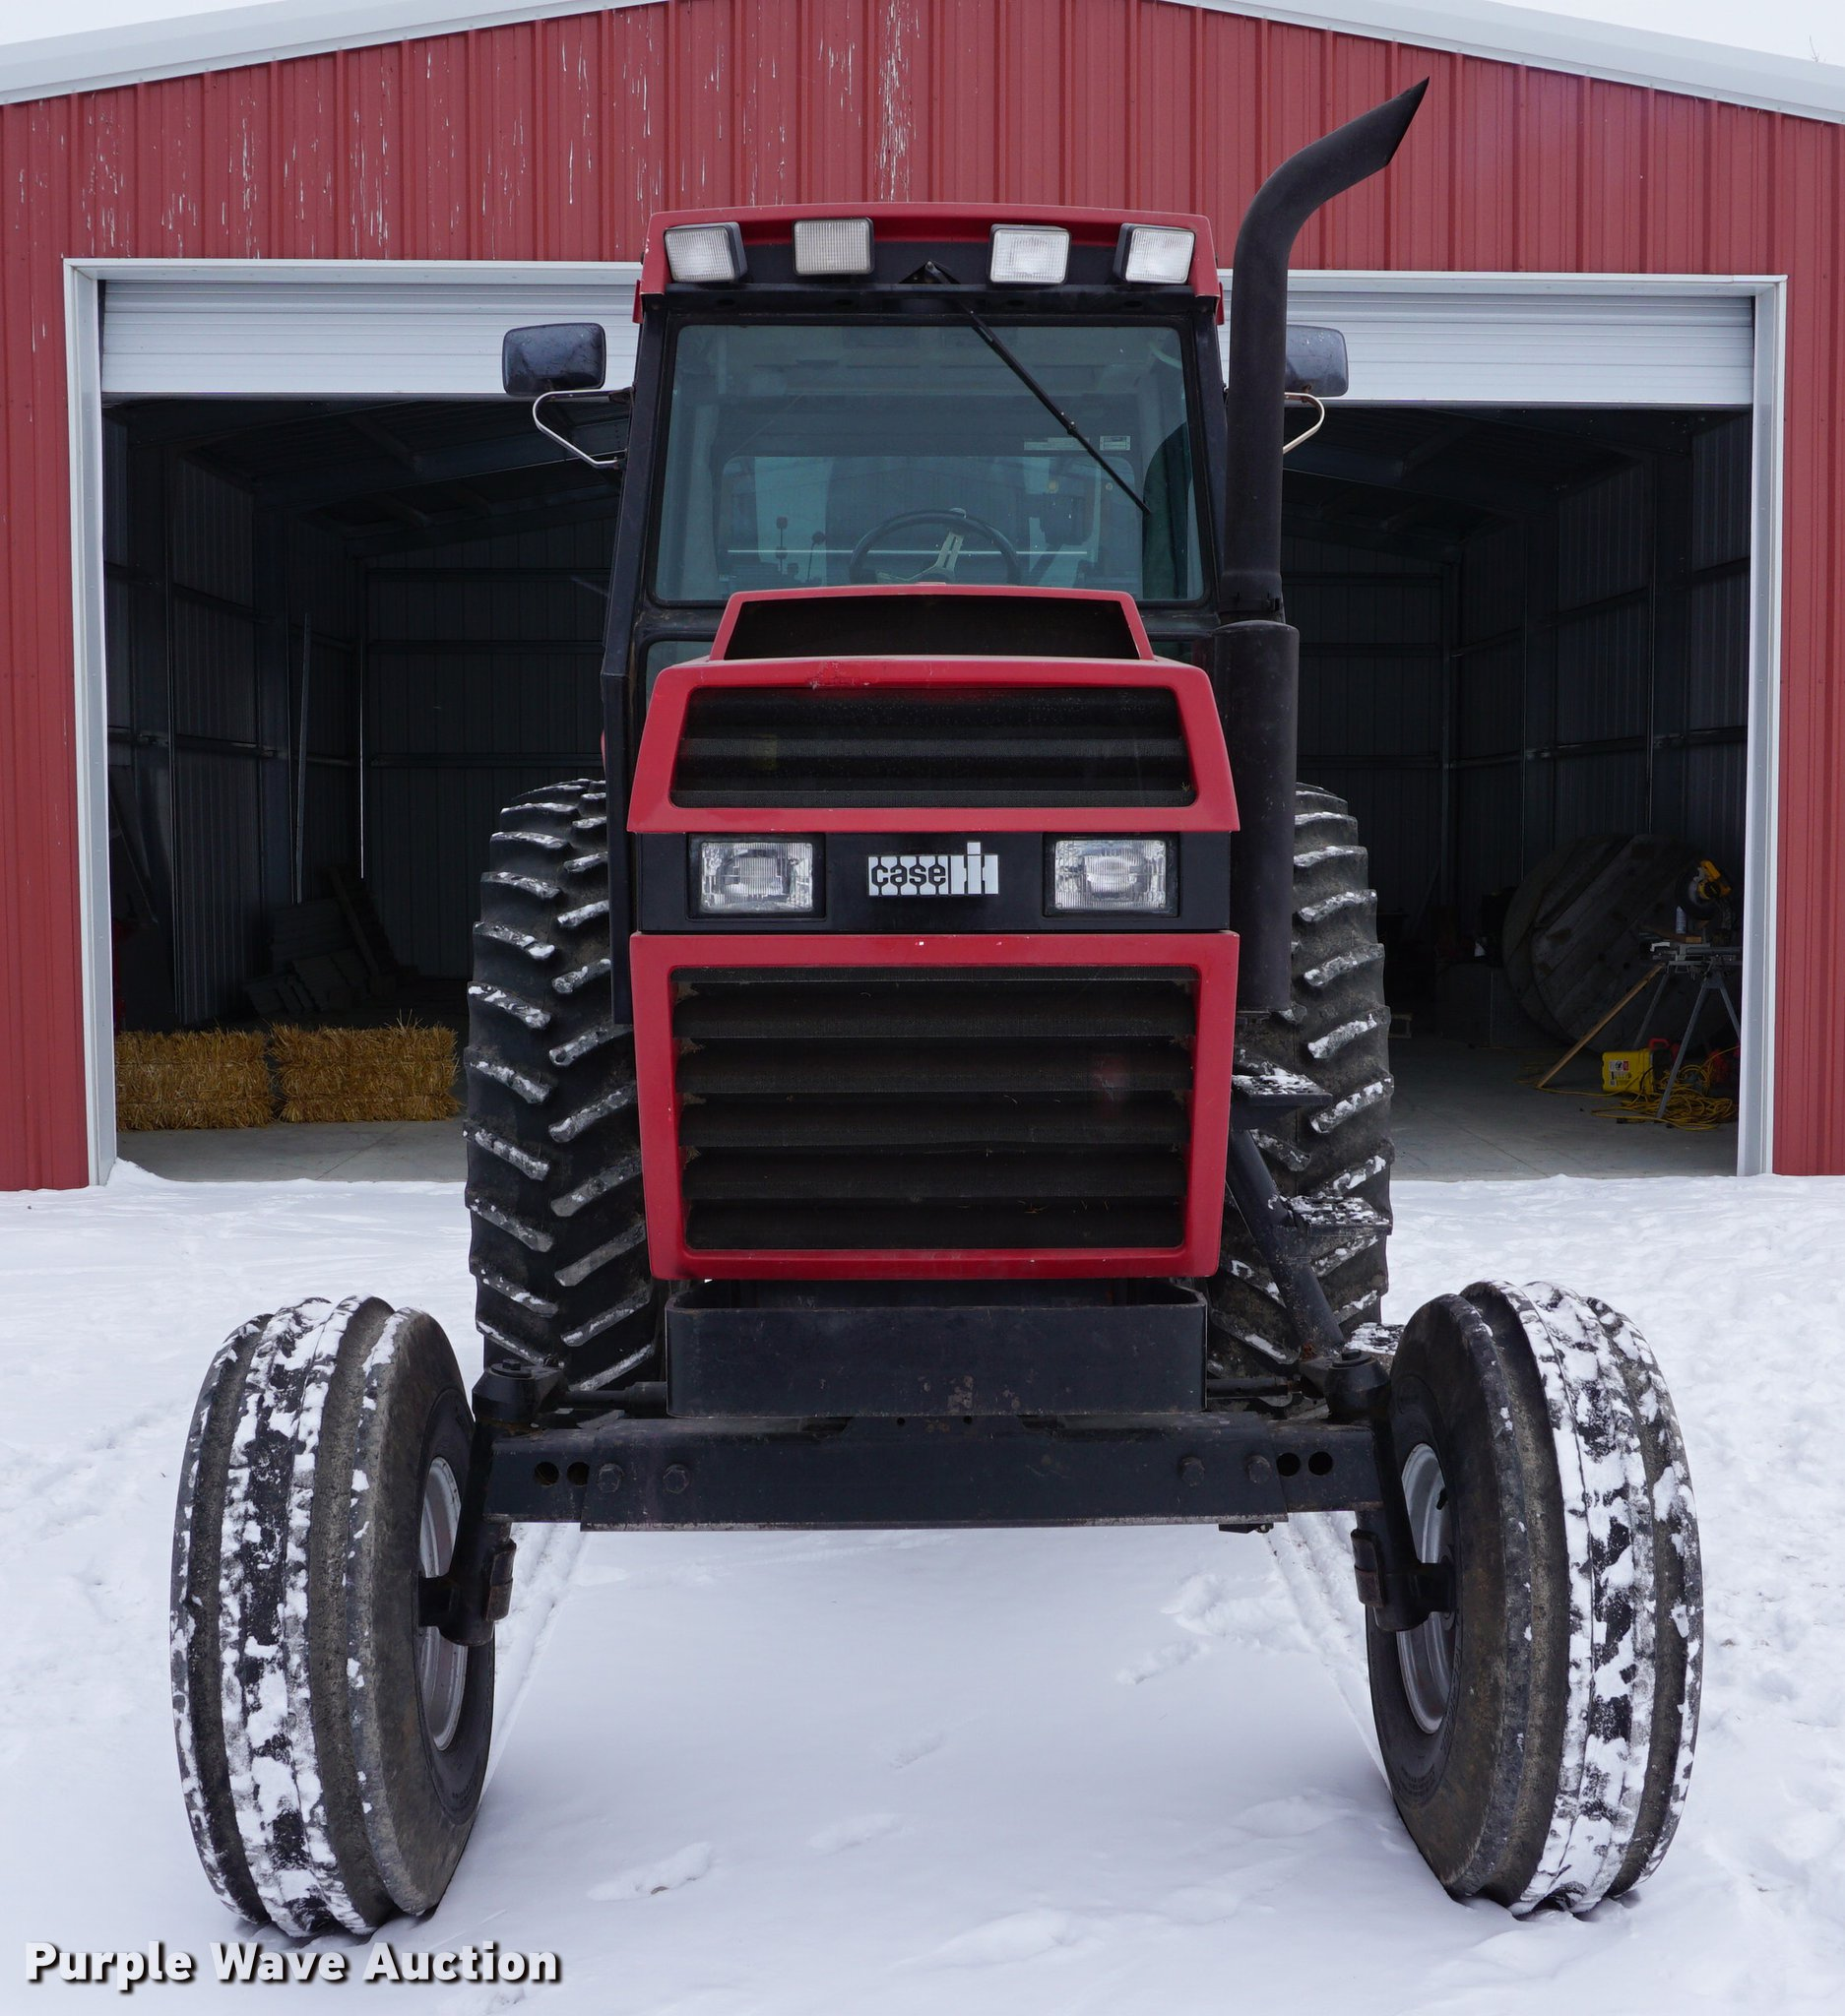 ... Case IH 2394 tractor Full size in new window ...